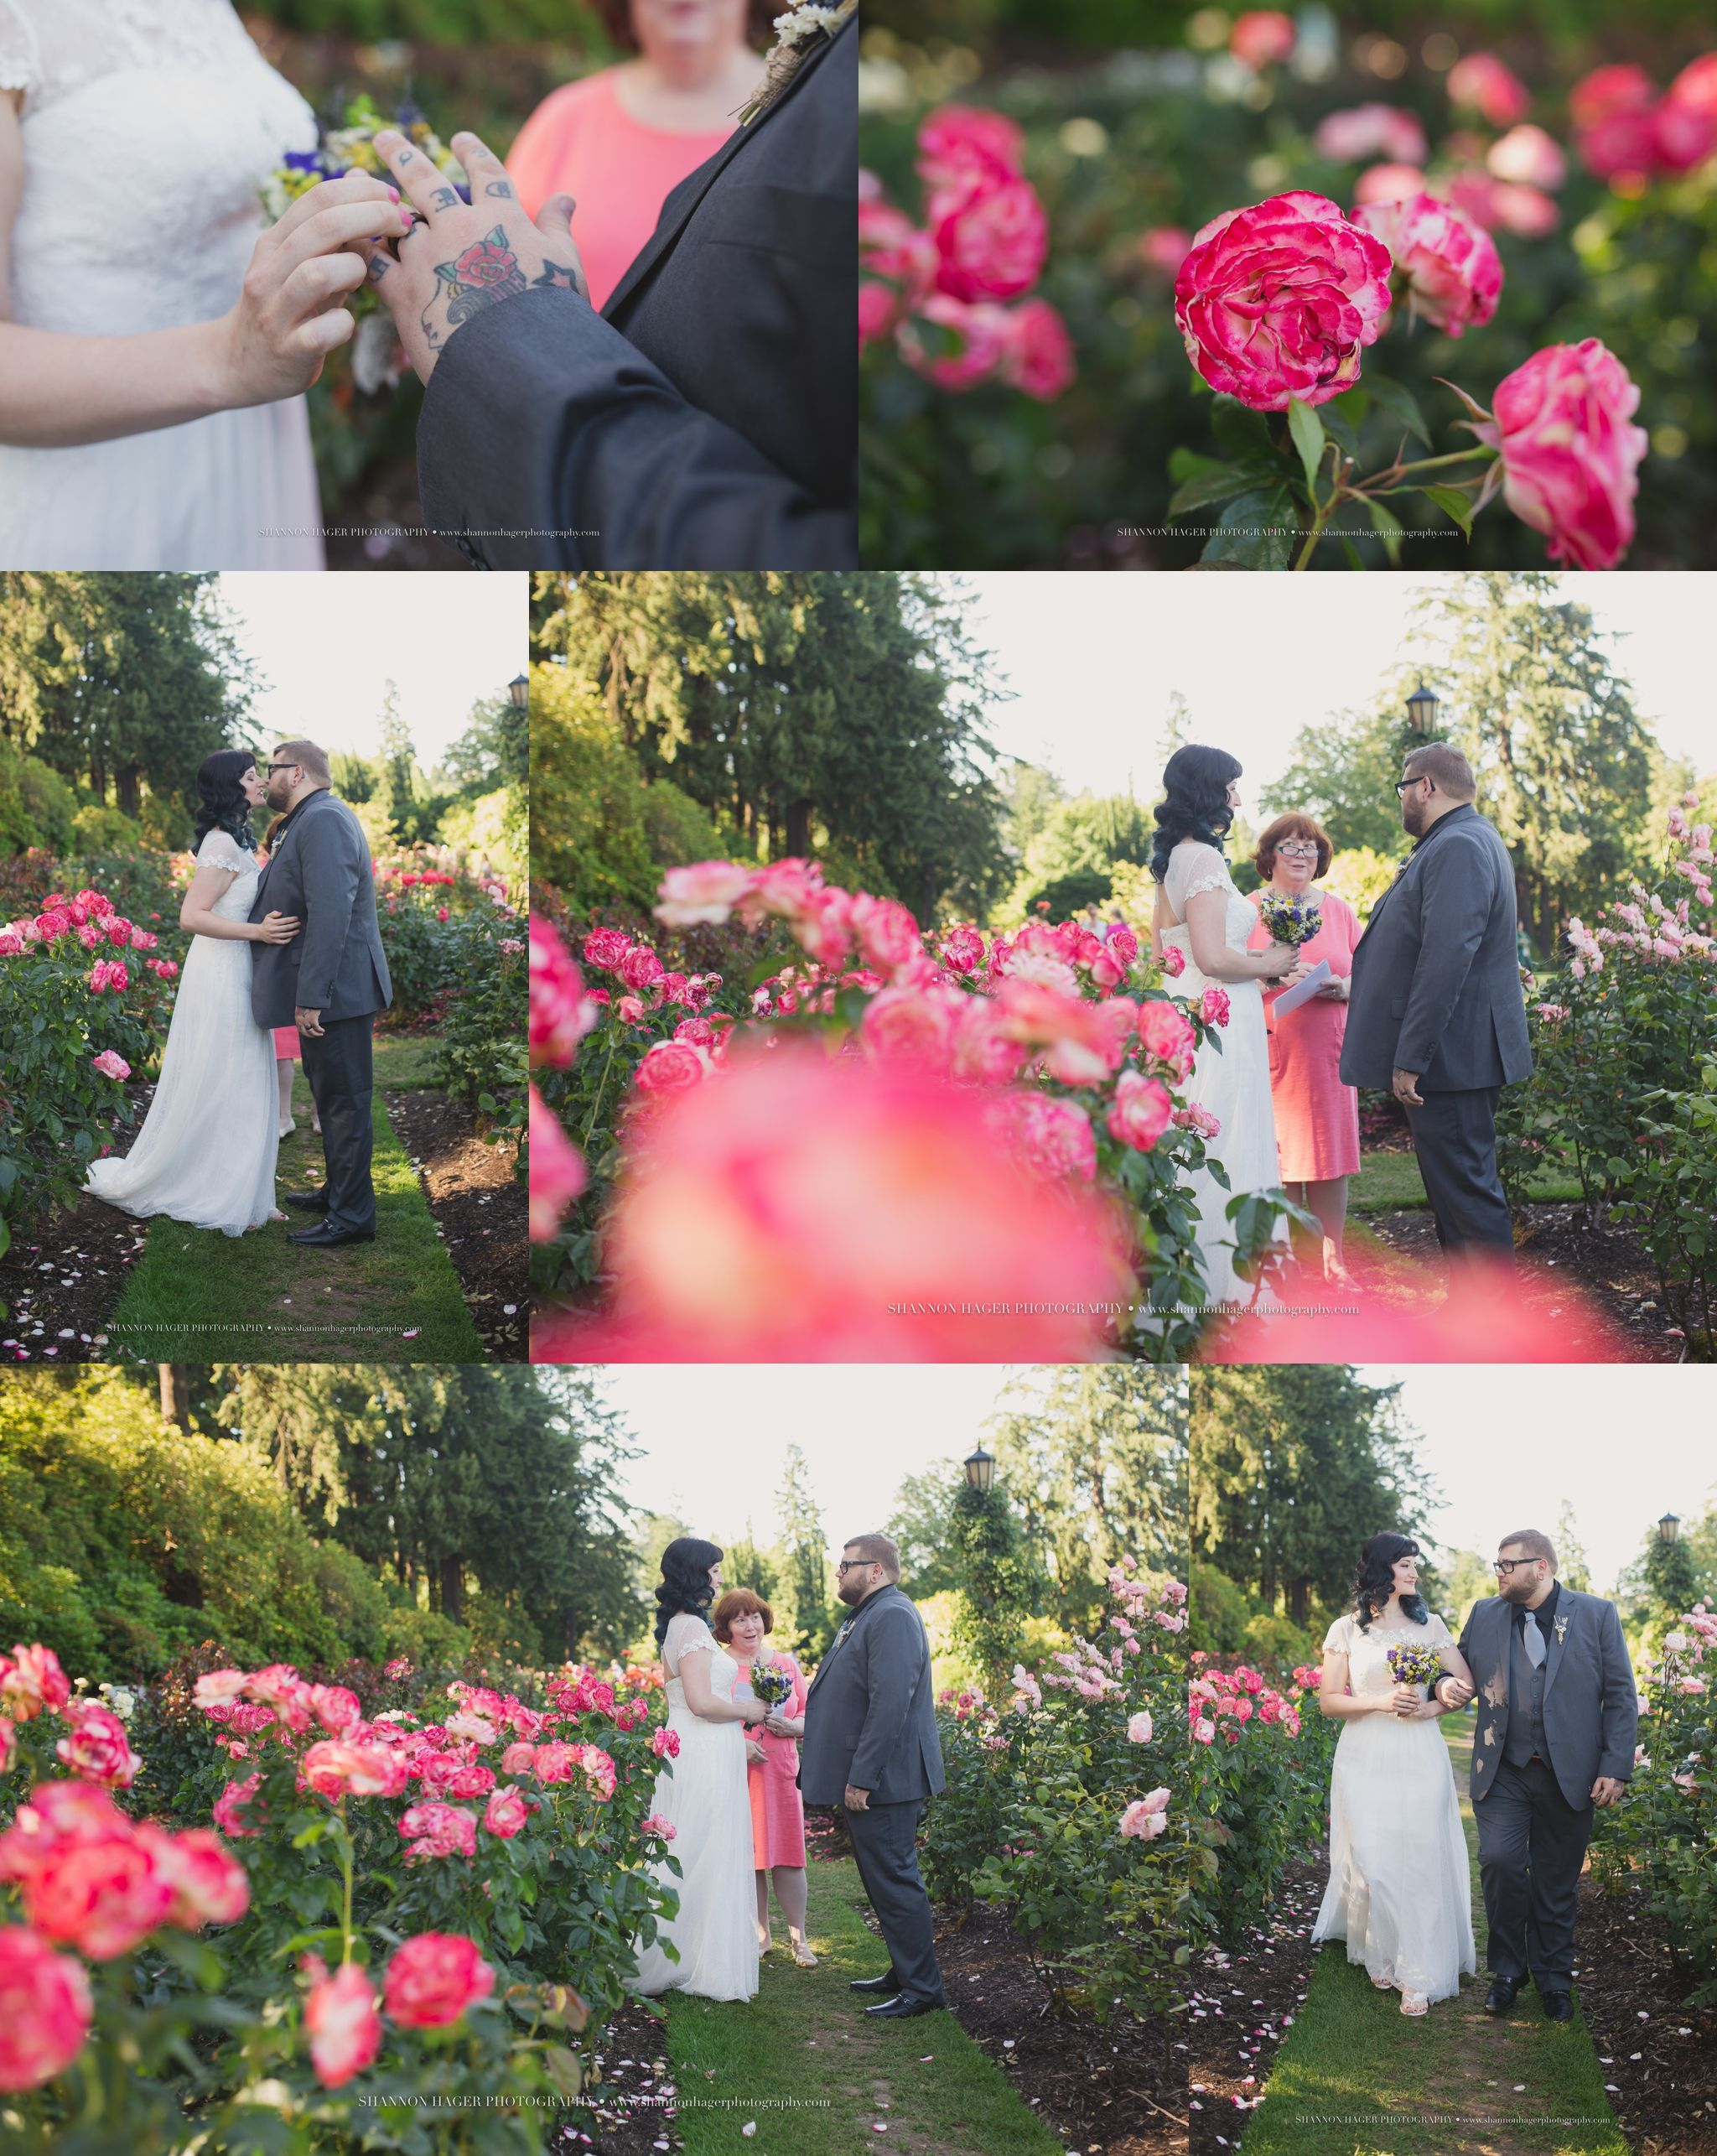 Portland Elopement Photographer Oregon Rose Garden Wedding Shannon Hager Photography